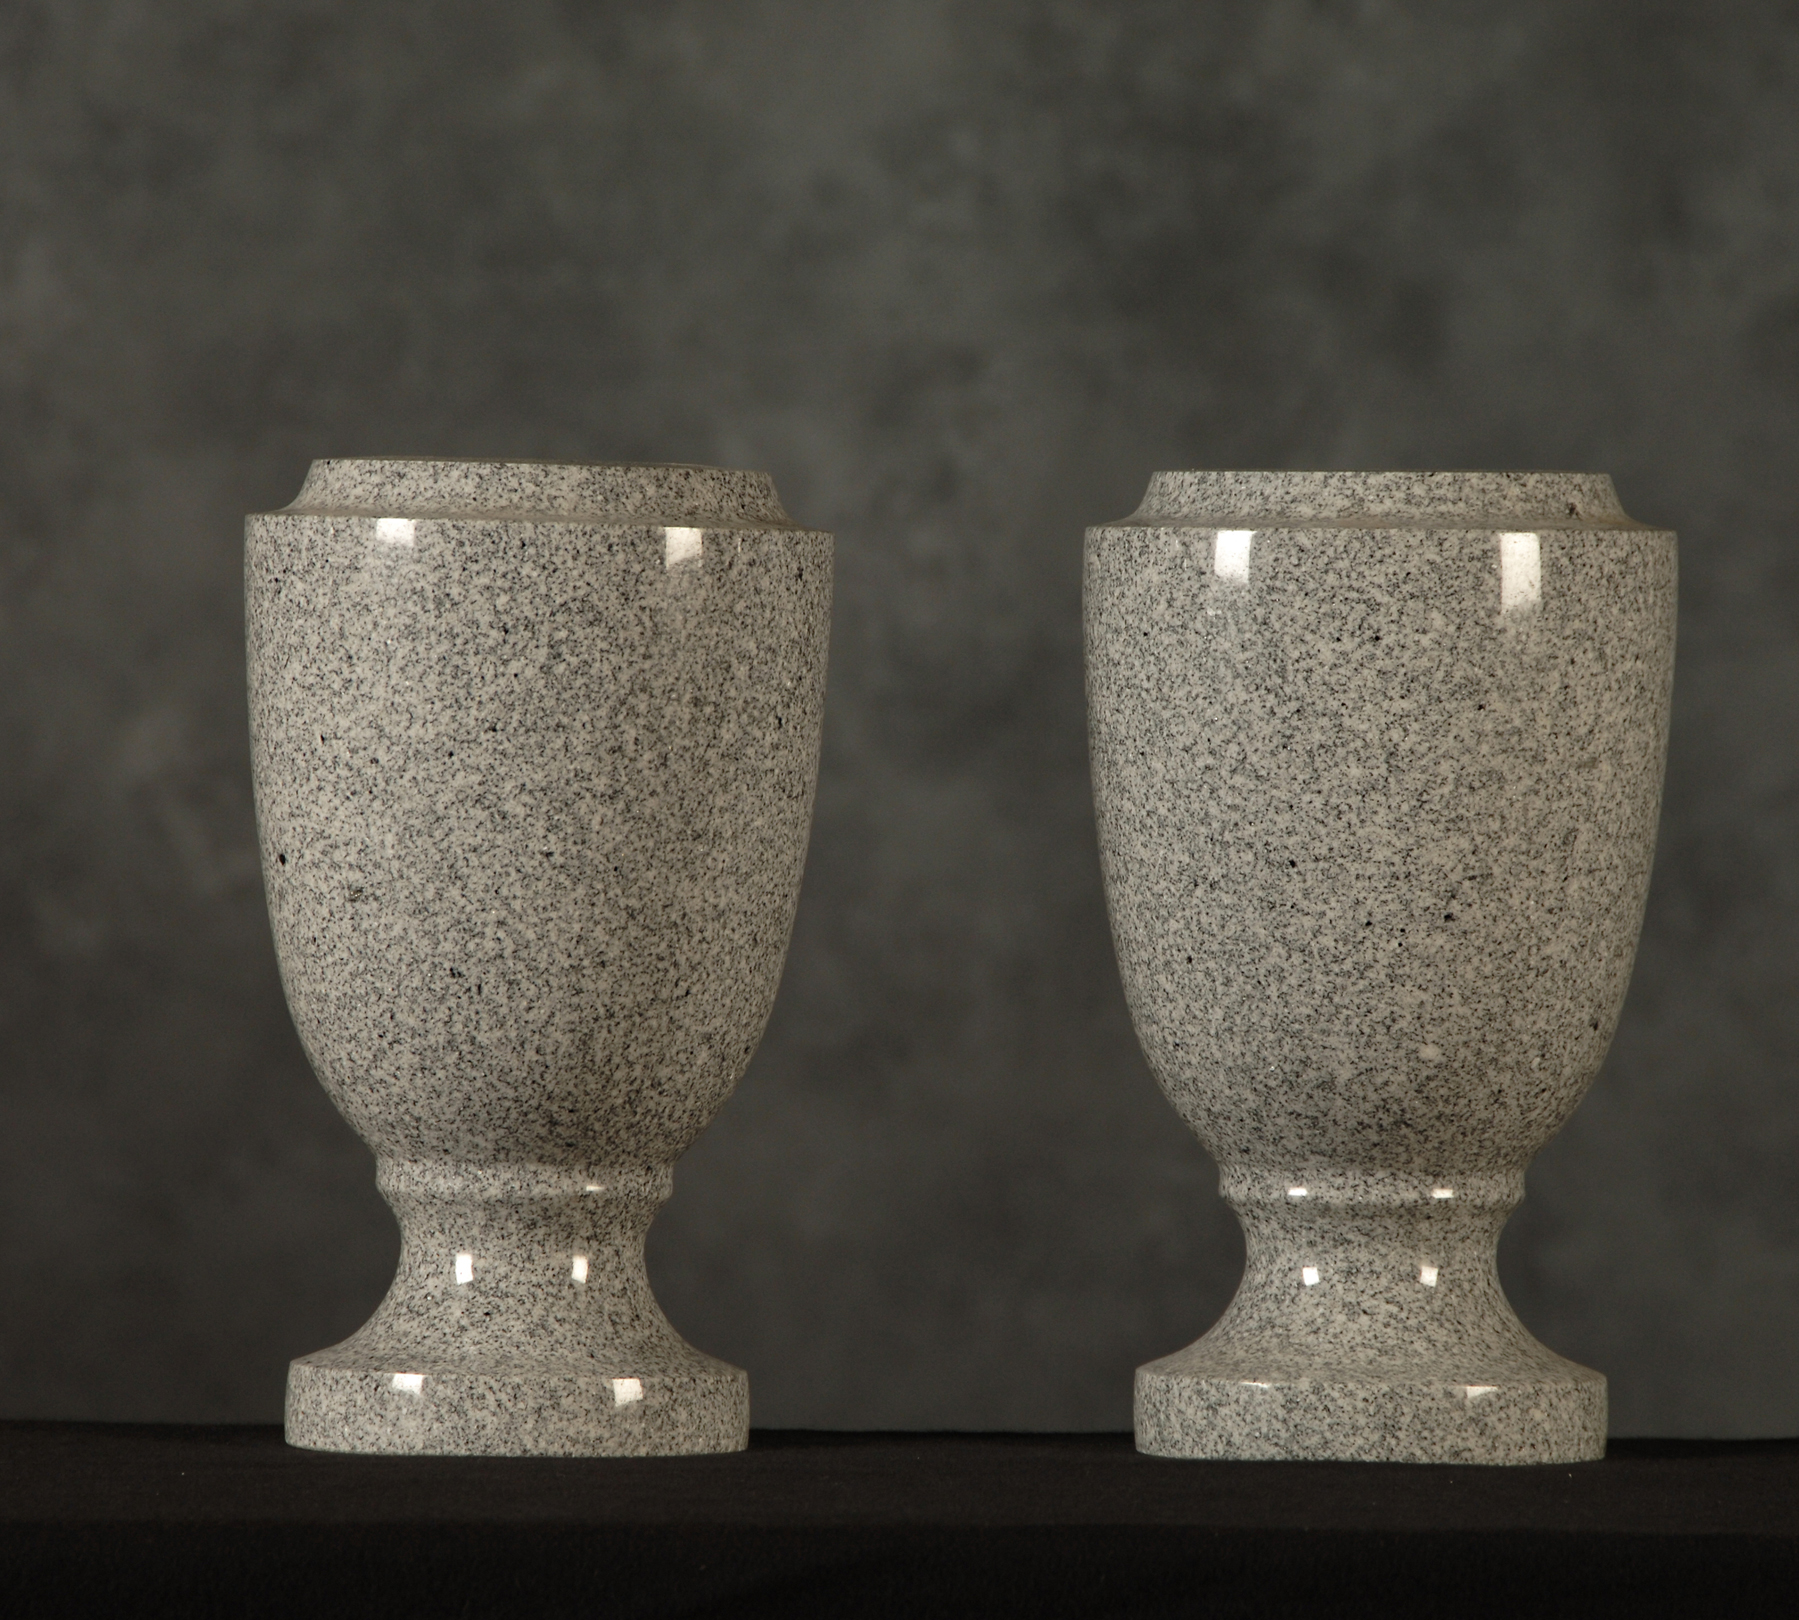 Roquemore marble and granite specialty flower vases medium gray v9 style vase 6x10 floridaeventfo Images